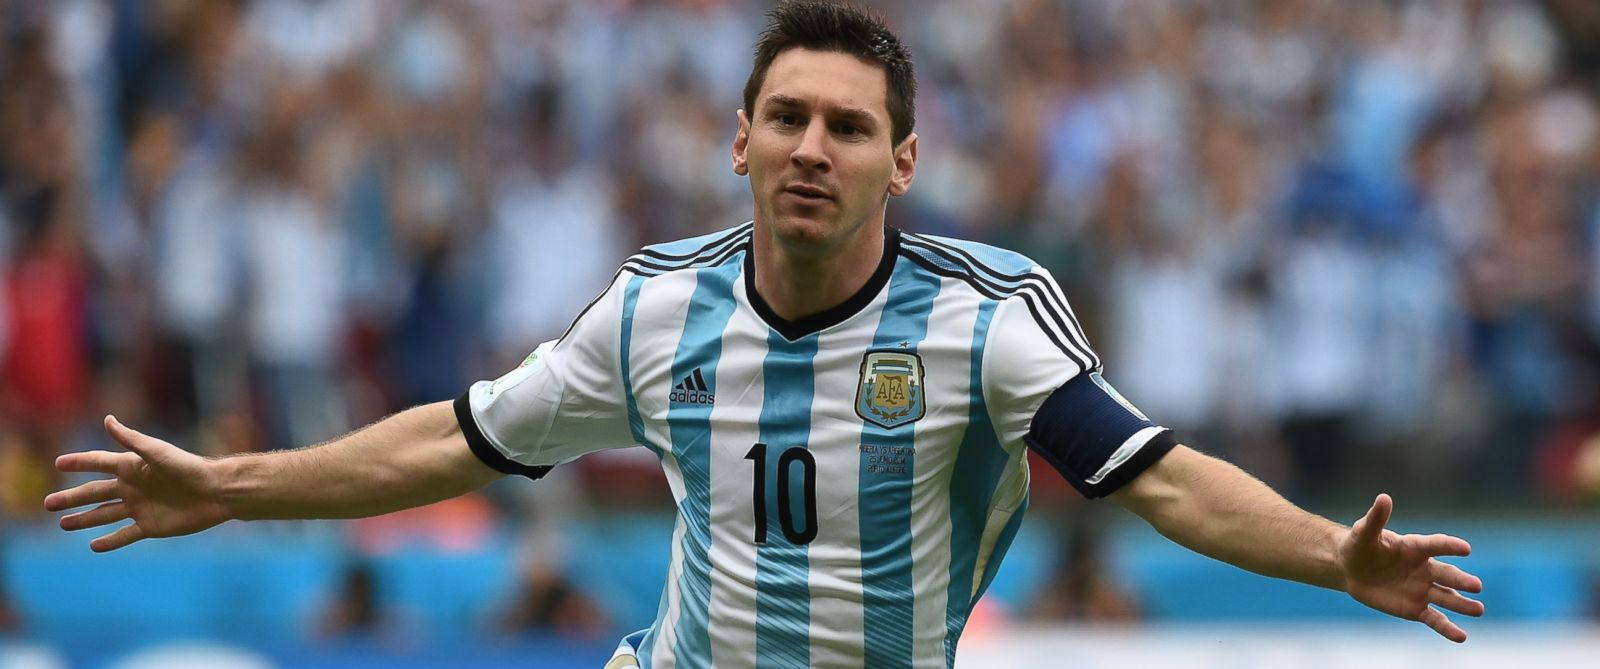 PHOTO: Argentinas forward and captain Lionel Messi